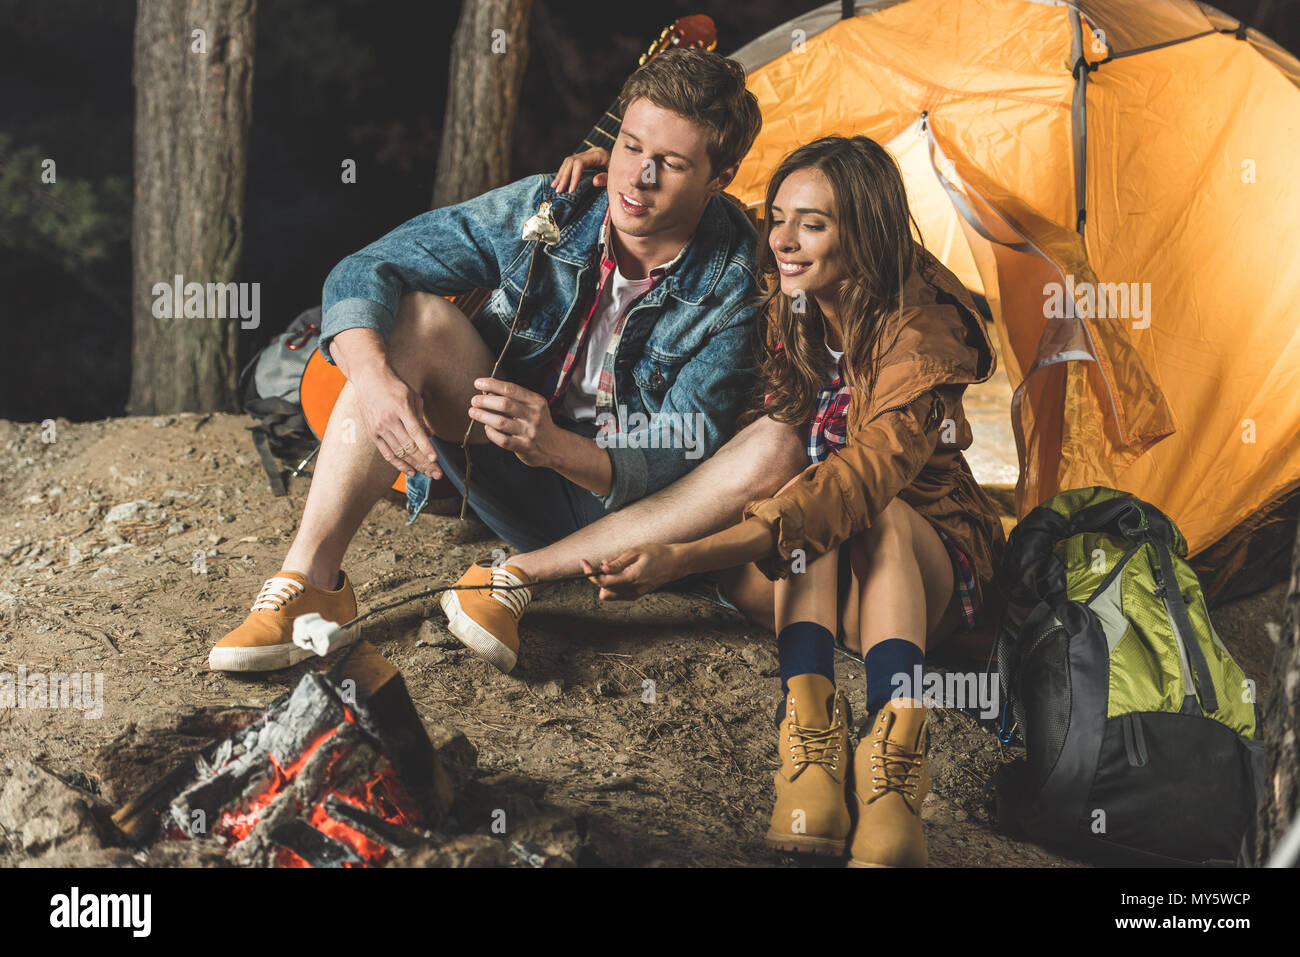 couple roasting marshmallow on sticks in camping trip - Stock Image